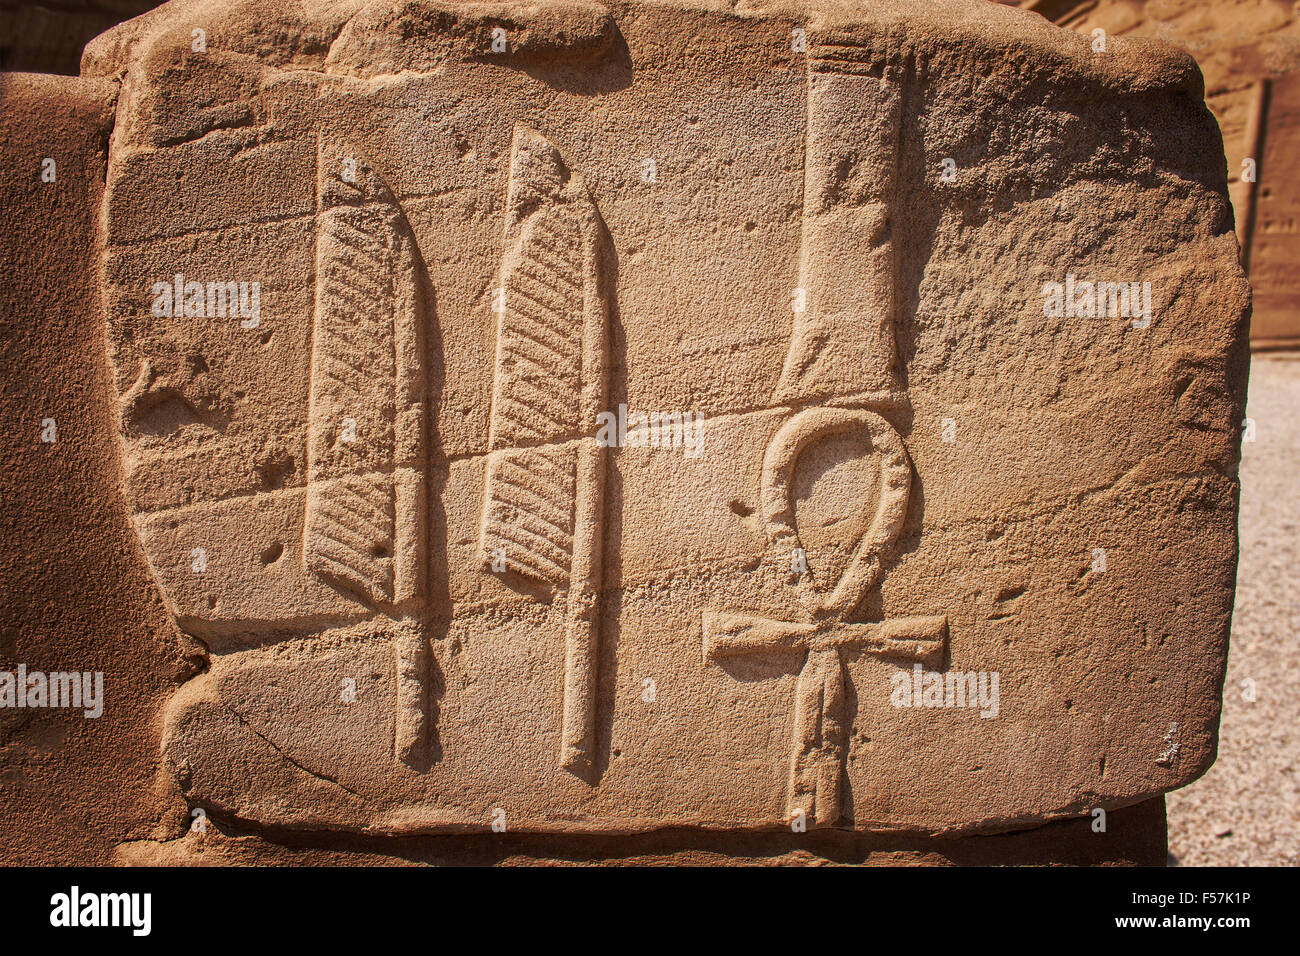 Image of carved stone found at the temple of Karnak, Egypt. - Stock Image